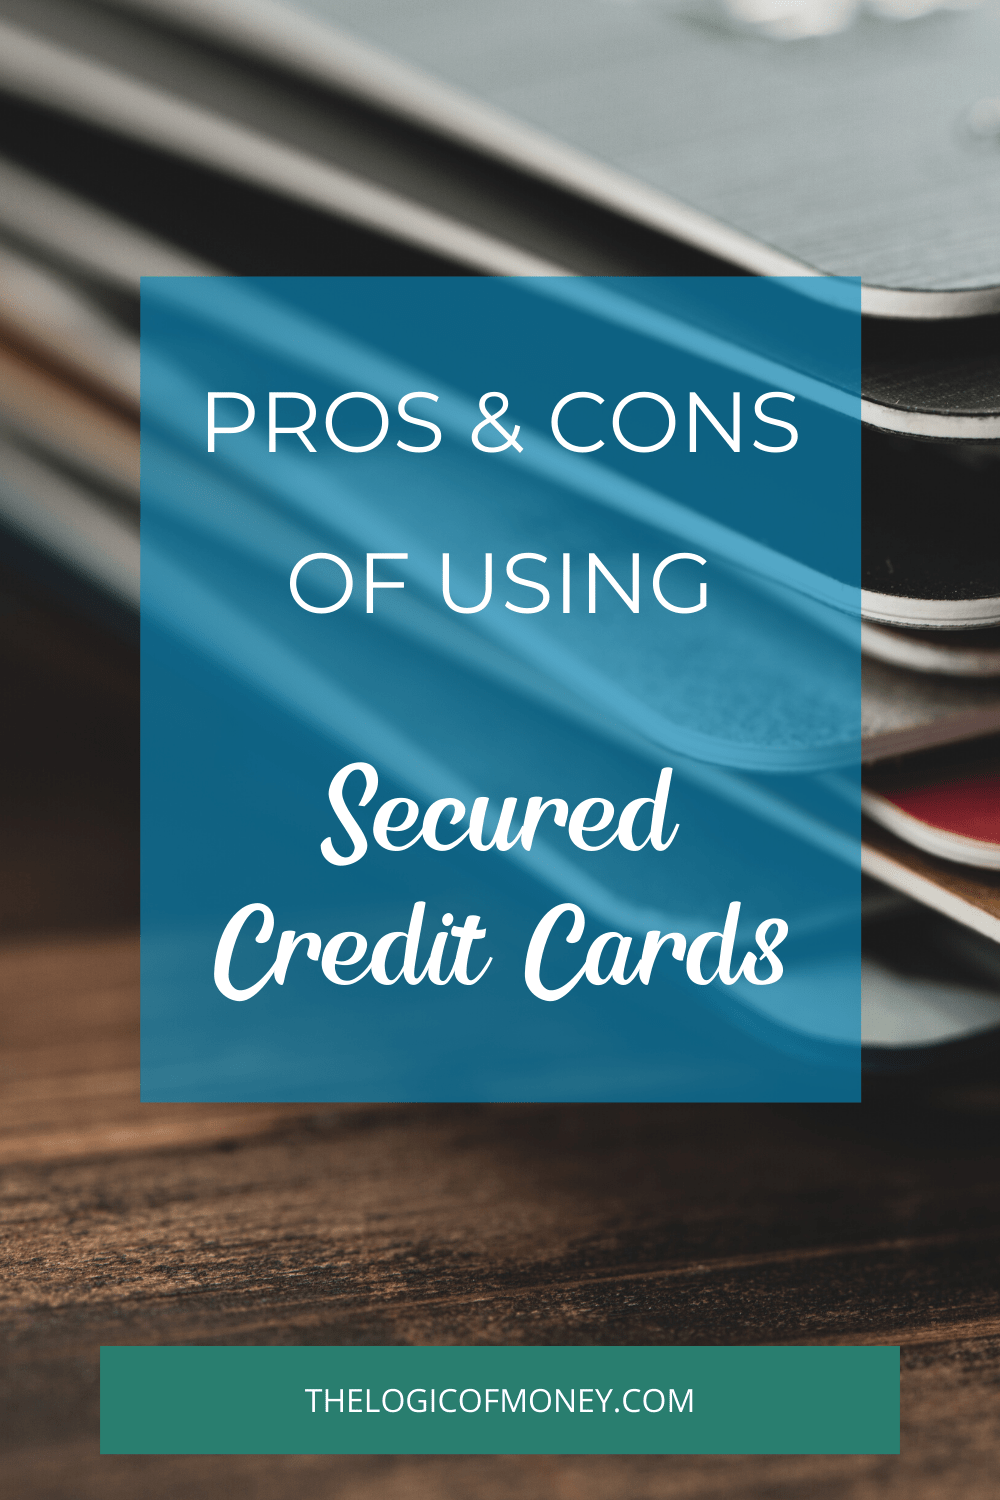 Pros & Cons of Using Secured Credit Cards